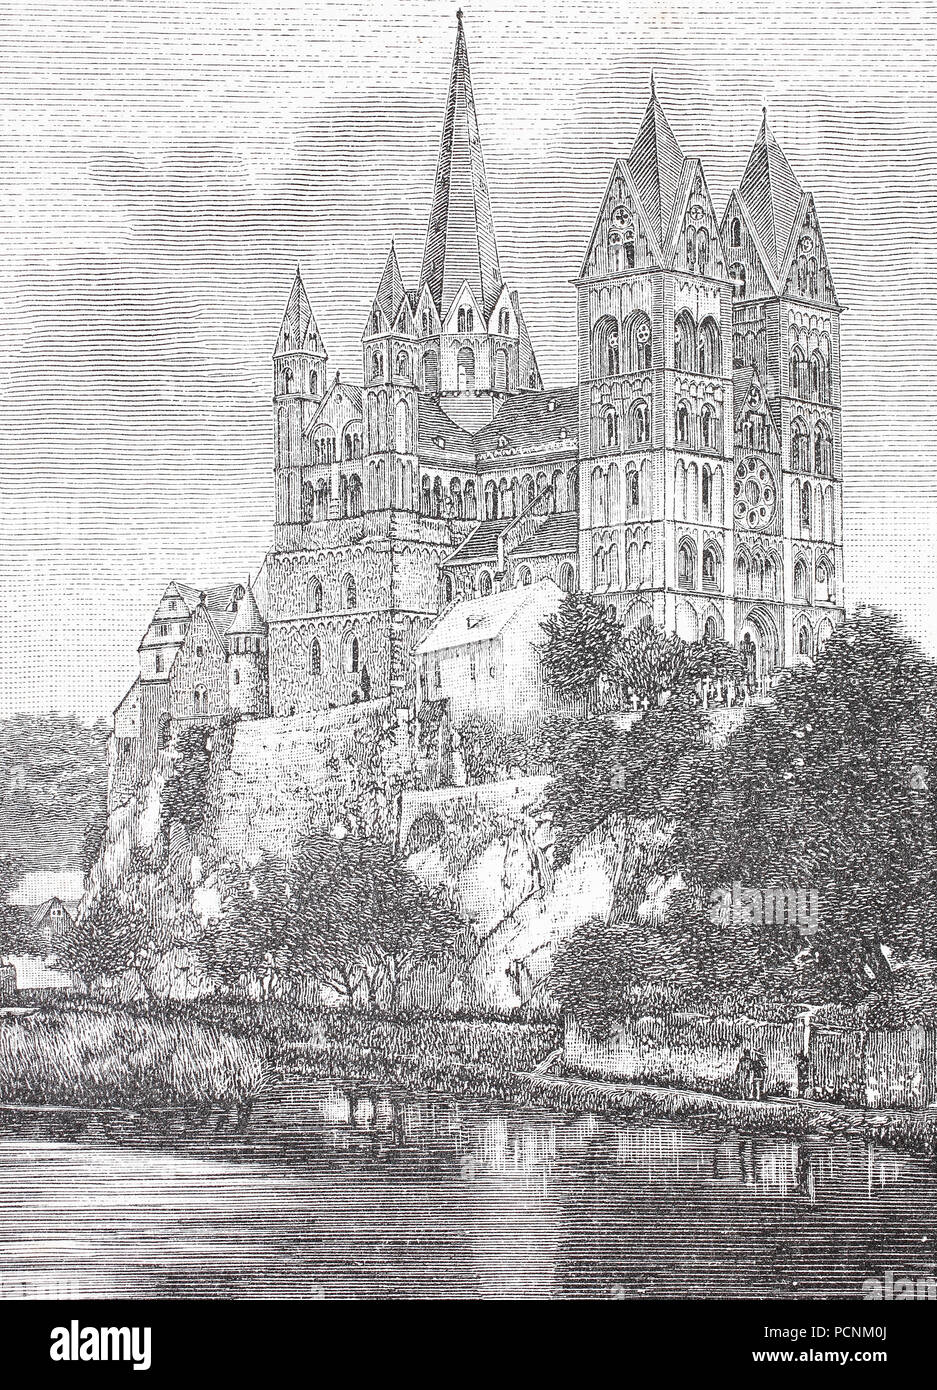 St George's Cathedral, Limburg, Hesse, Germany, digital improved reproduction of an historical image from the year 1885 - Stock Image